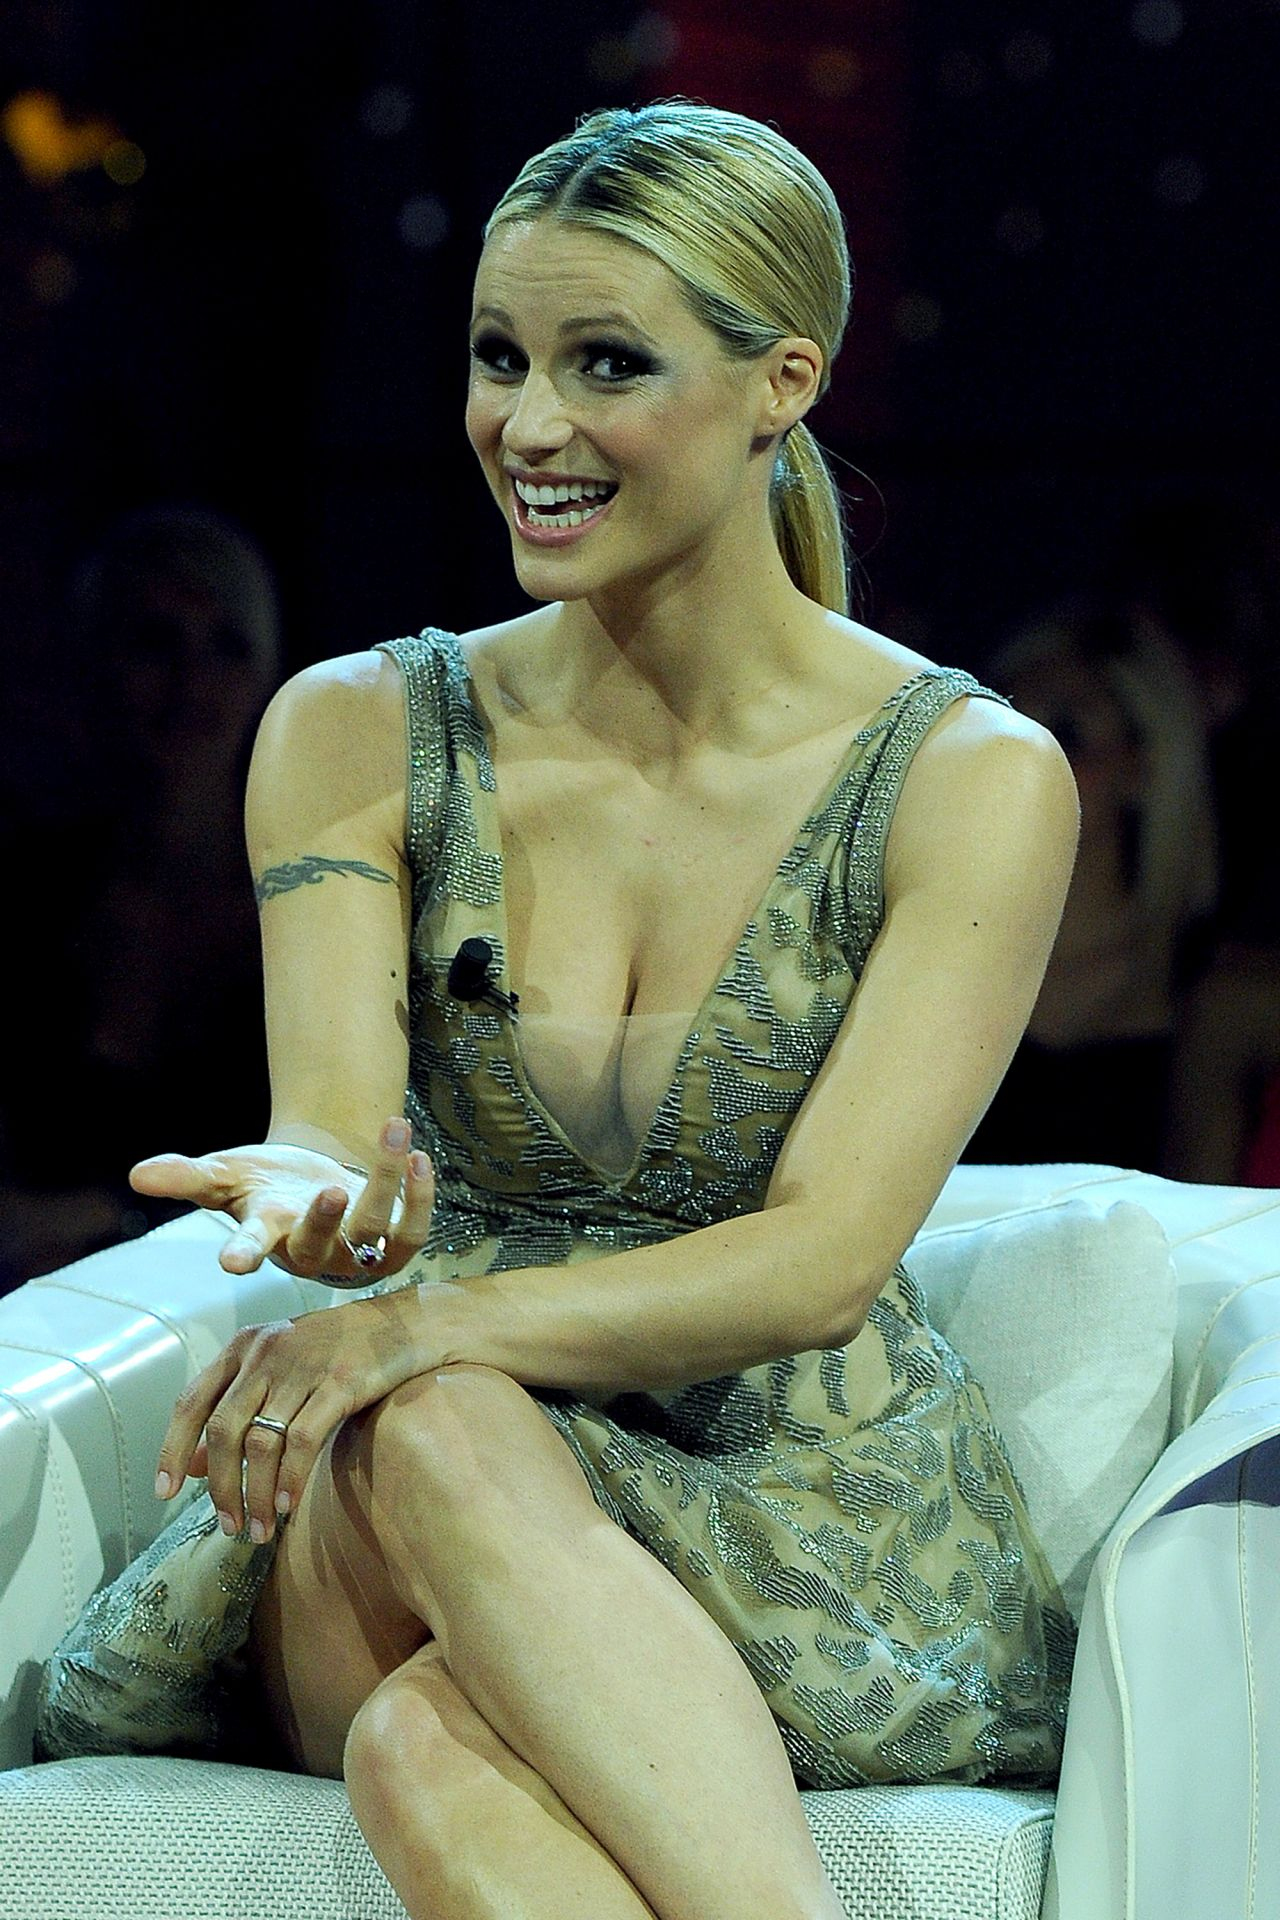 Michelle Hunziker Guest in TV Show in Milan, May 2015 Giorgio Armani